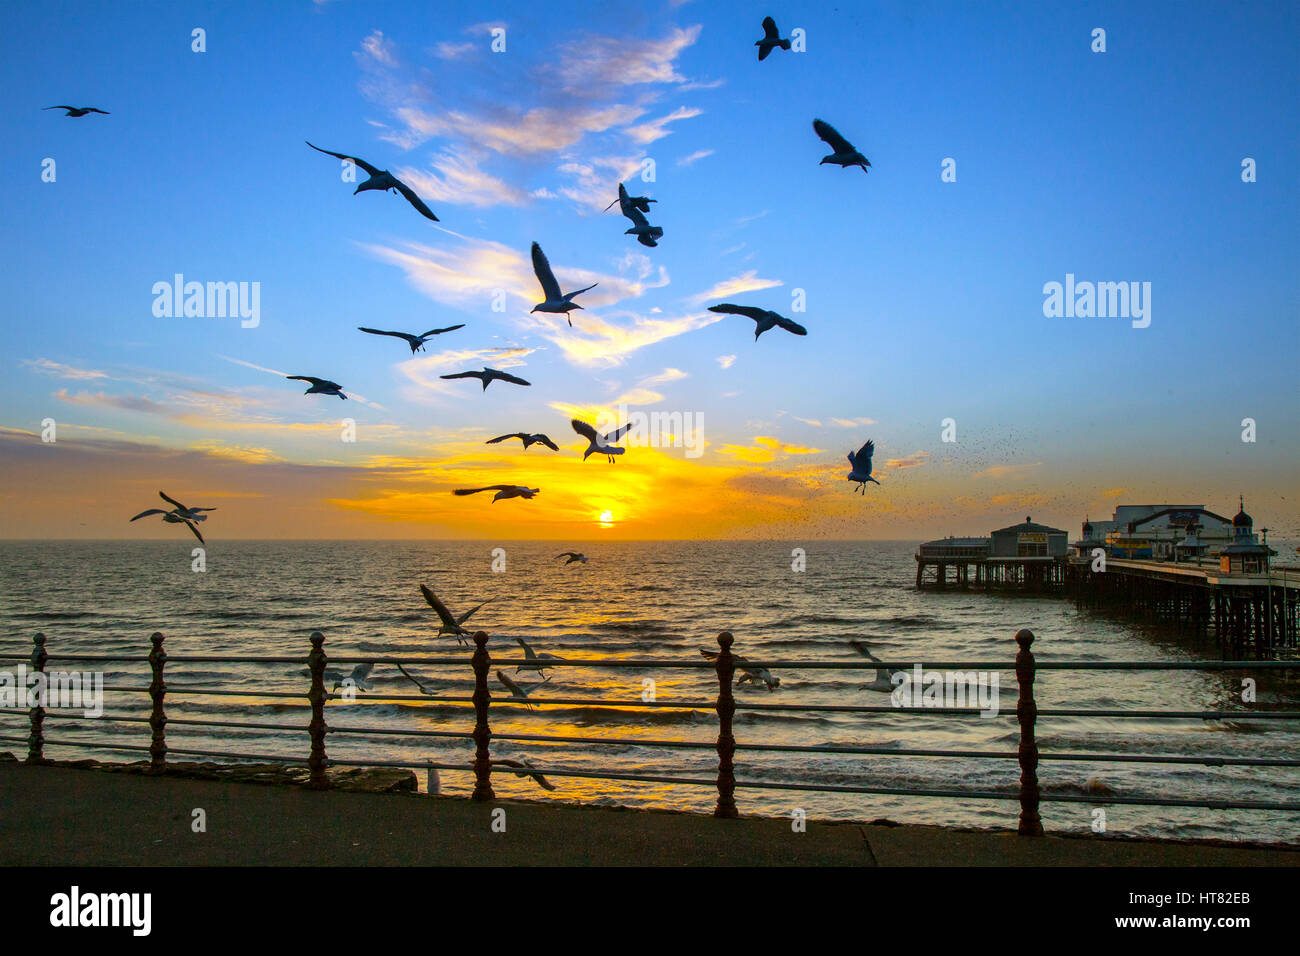 Blackpool, Lancashire, UK. 8th March, 2017. UK Weather: Golden sunset with seagulls on the seafront. Traditionally - Stock Image